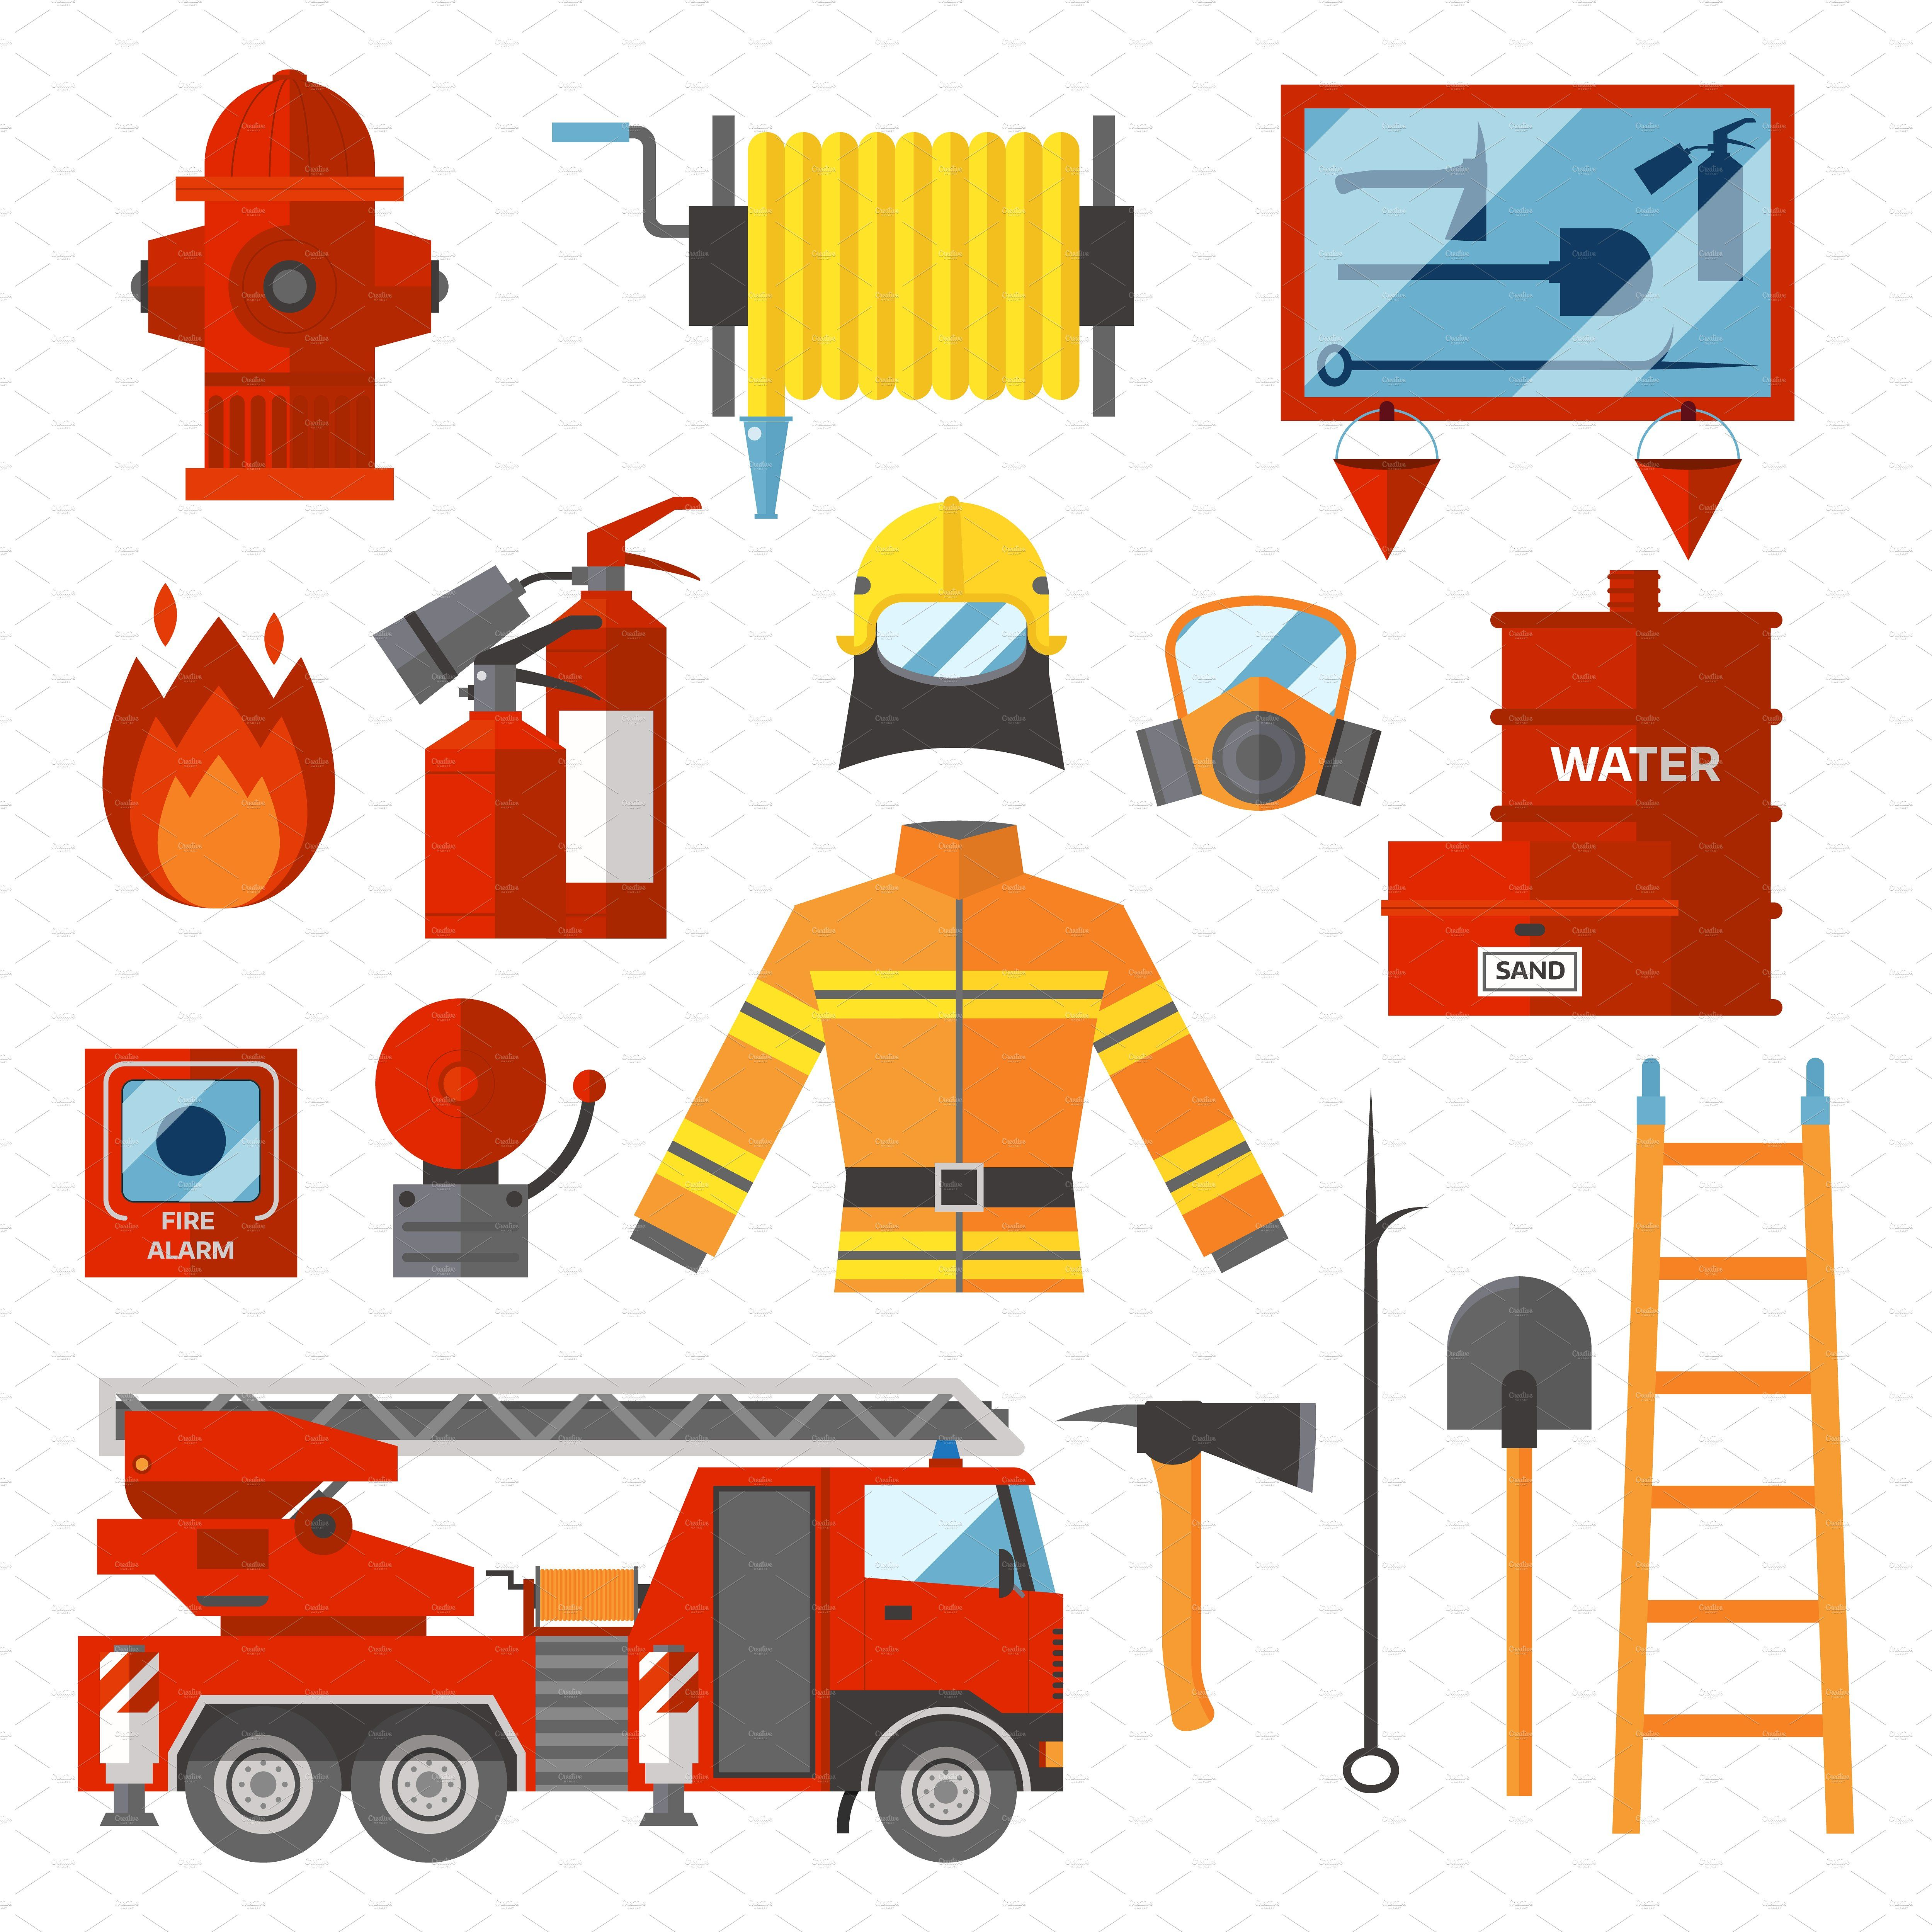 Fire safety equipment Fire safety theme, Fire safety